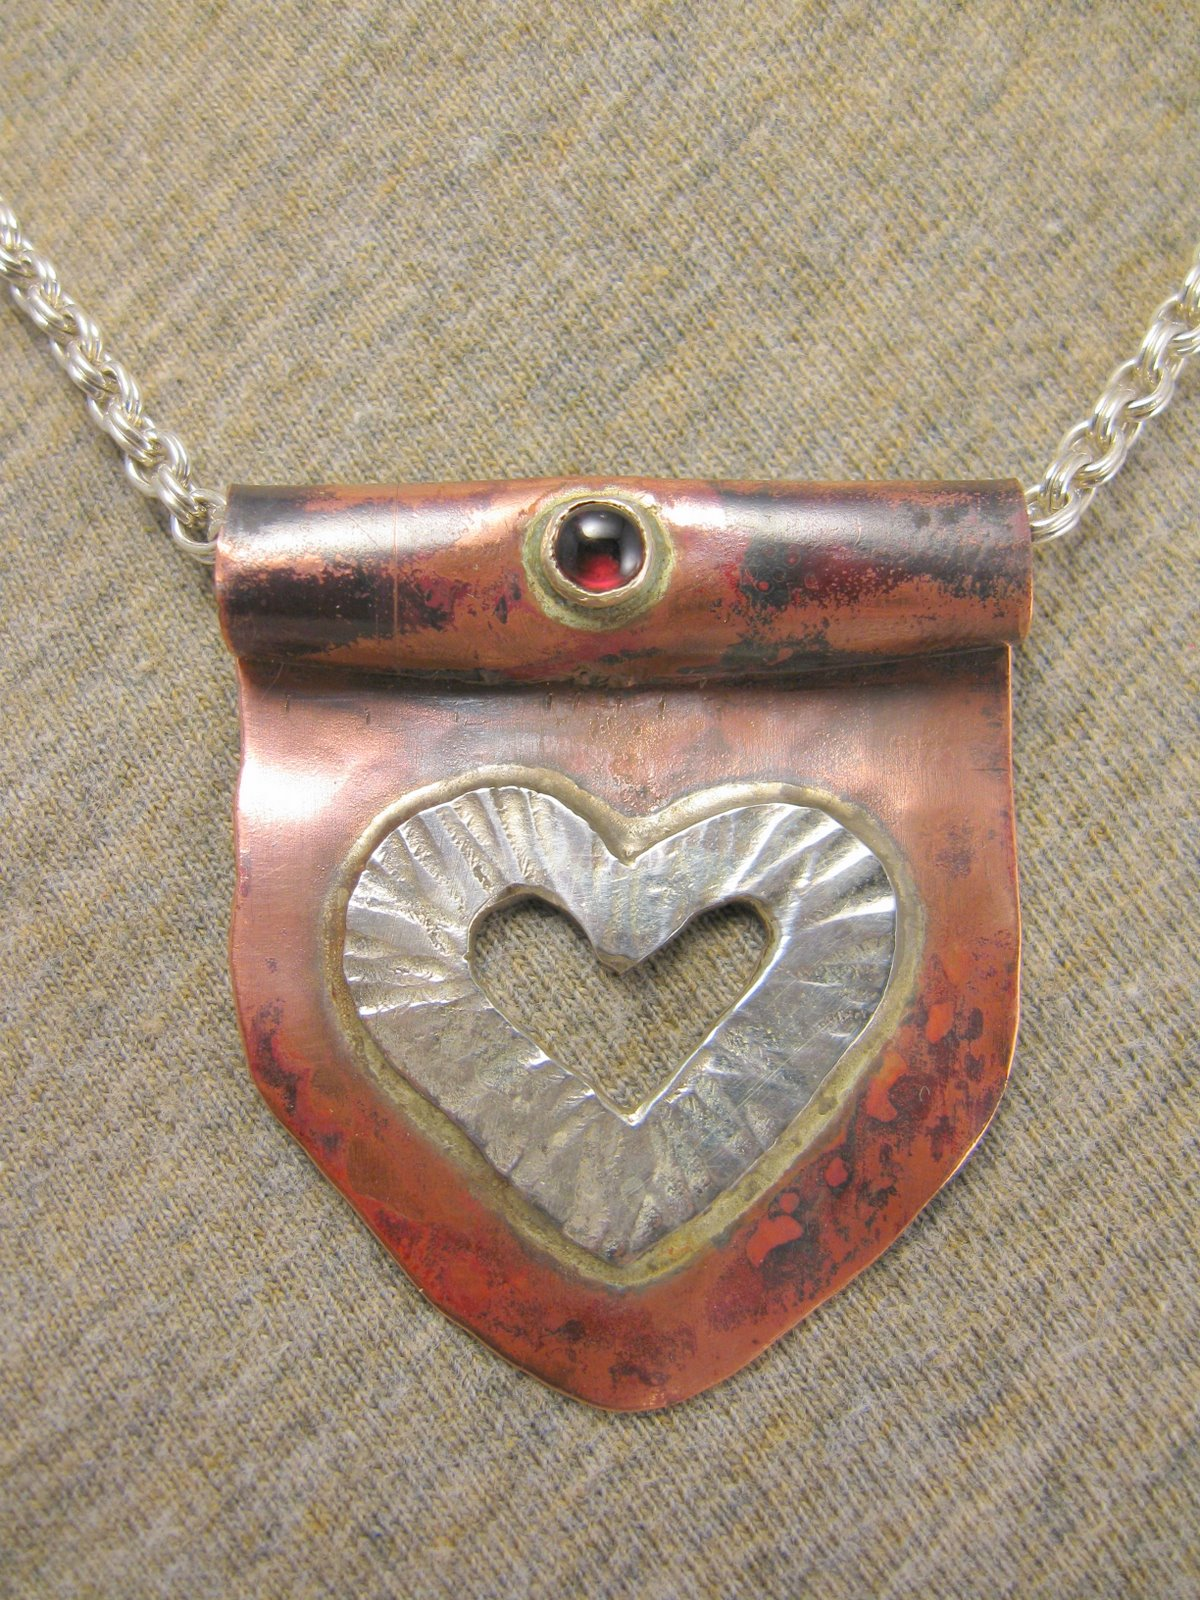 unrolling heart necklace